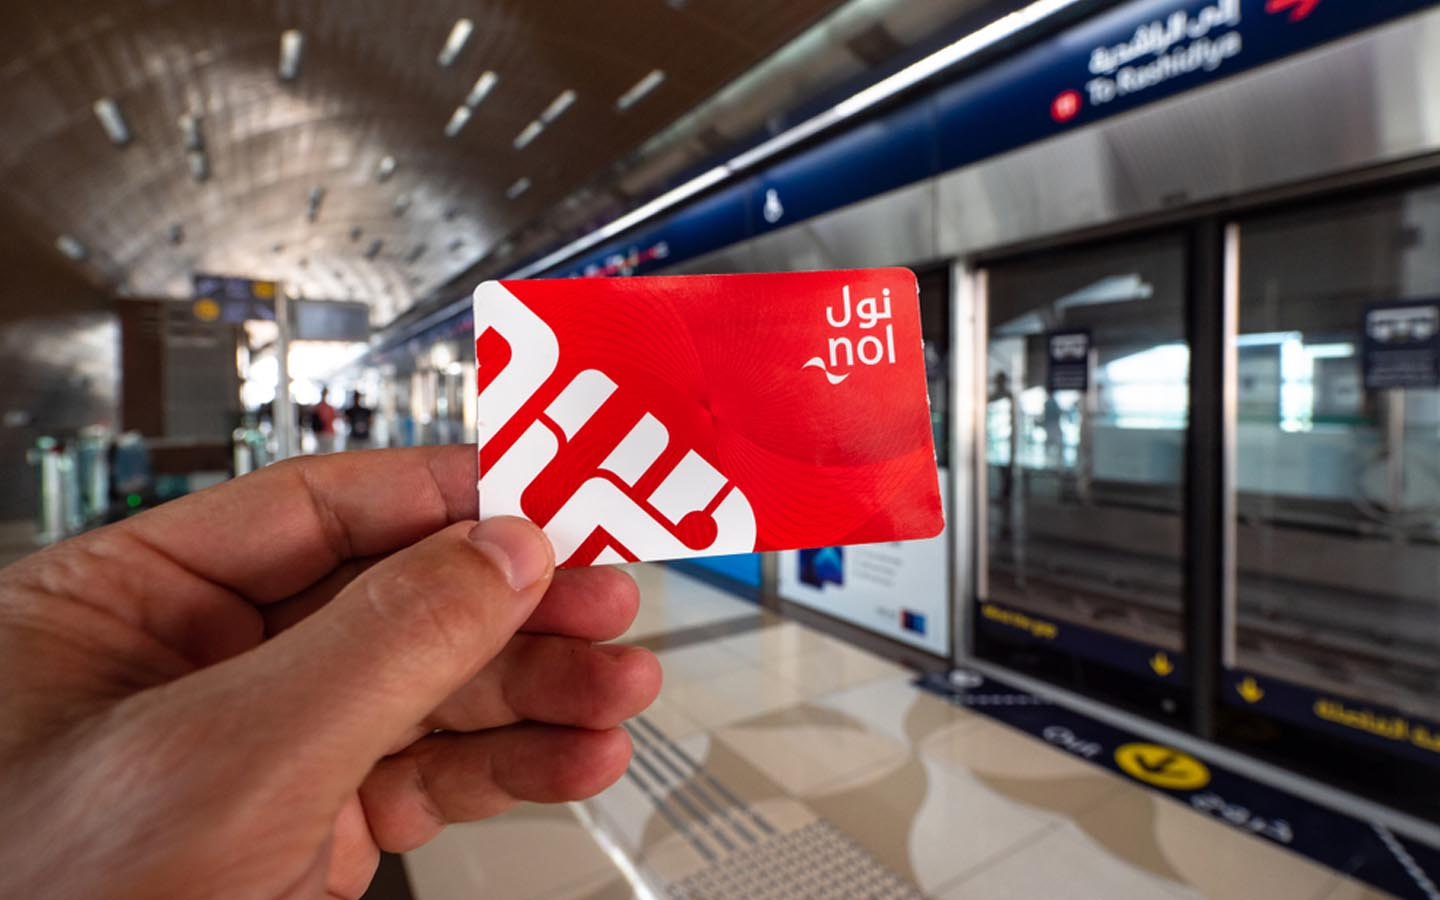 The RTA Red Nol card in Dubai